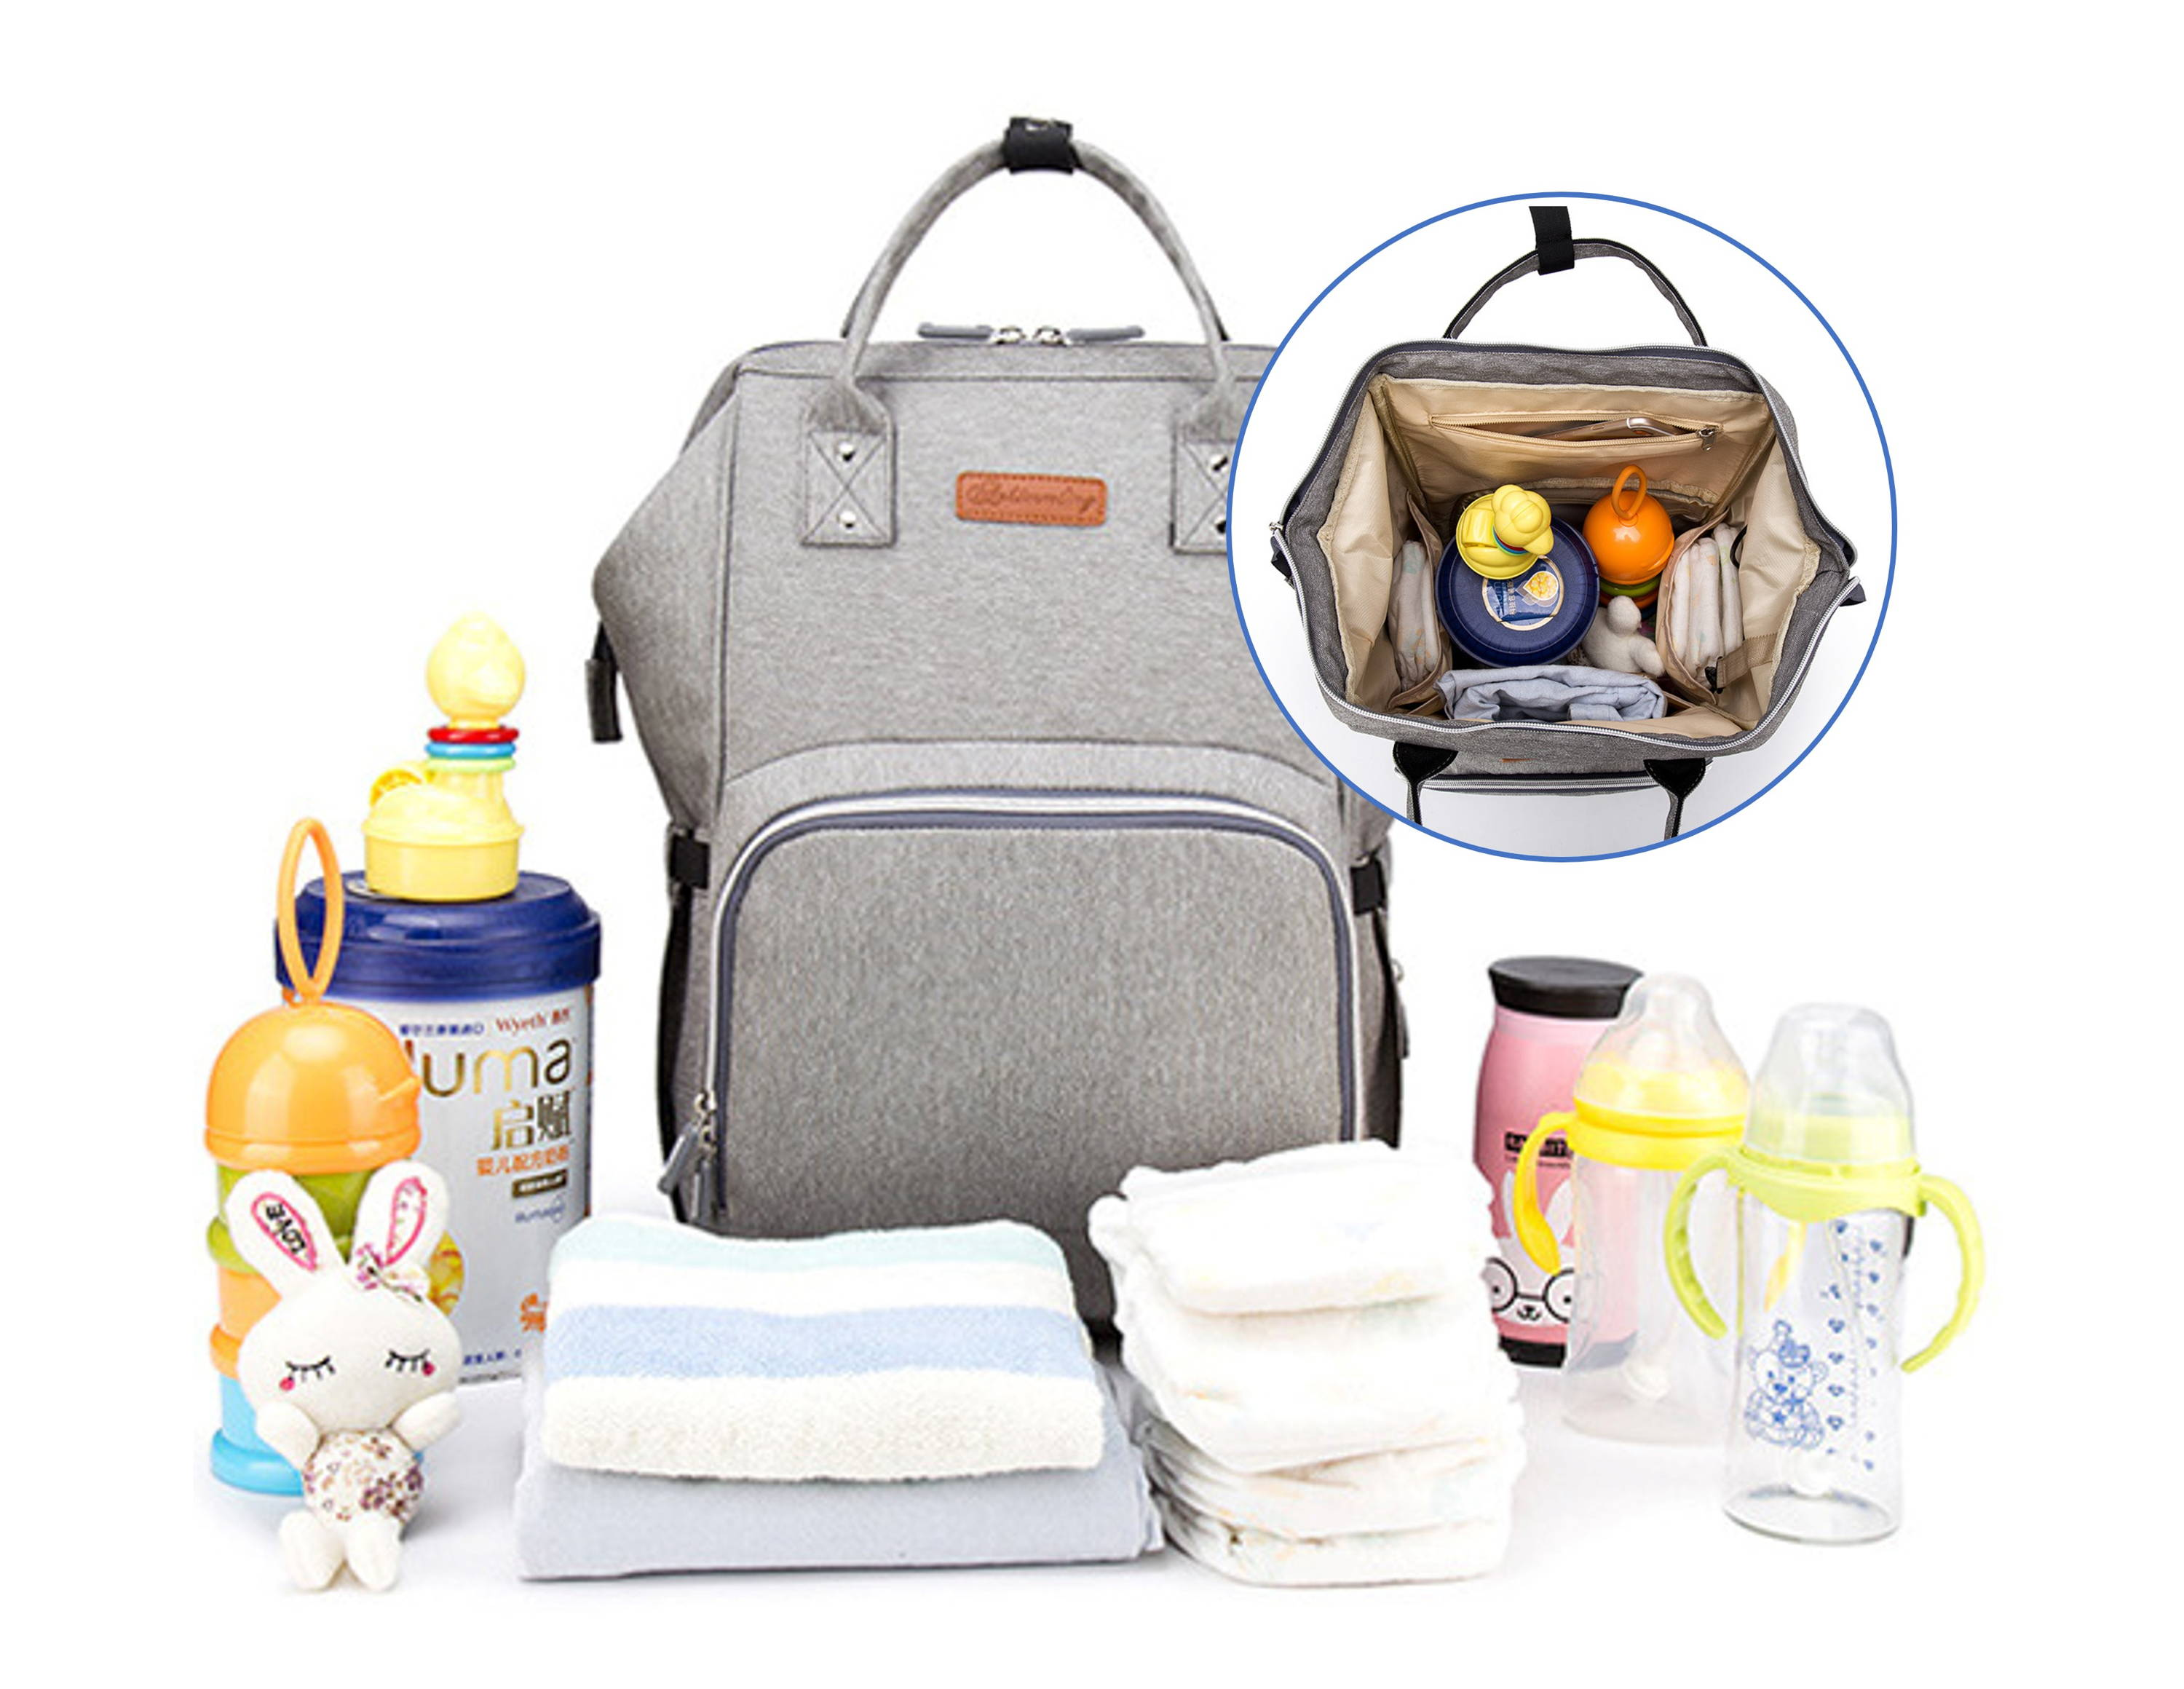 0fc0248e412 Very spacious interior and conveniently placed and sized compartments allow  to carry everything you need, and then some. And with the unique